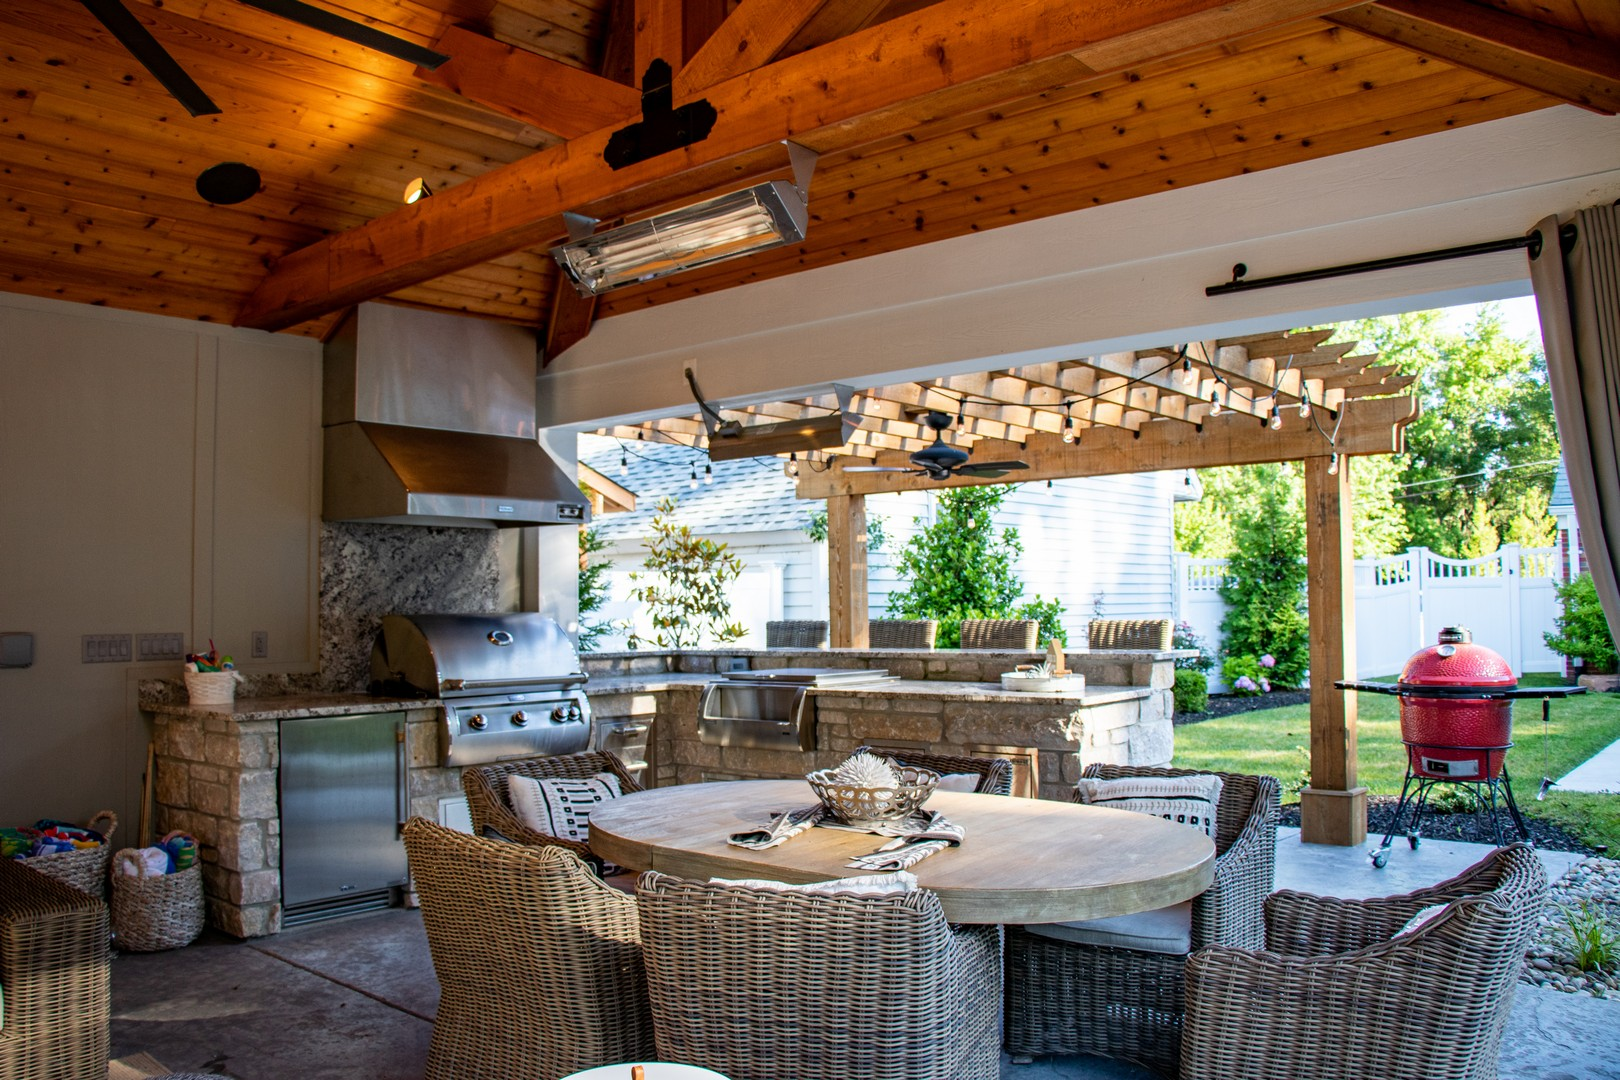 disconnect with technology in an outdoor room with a kitchen